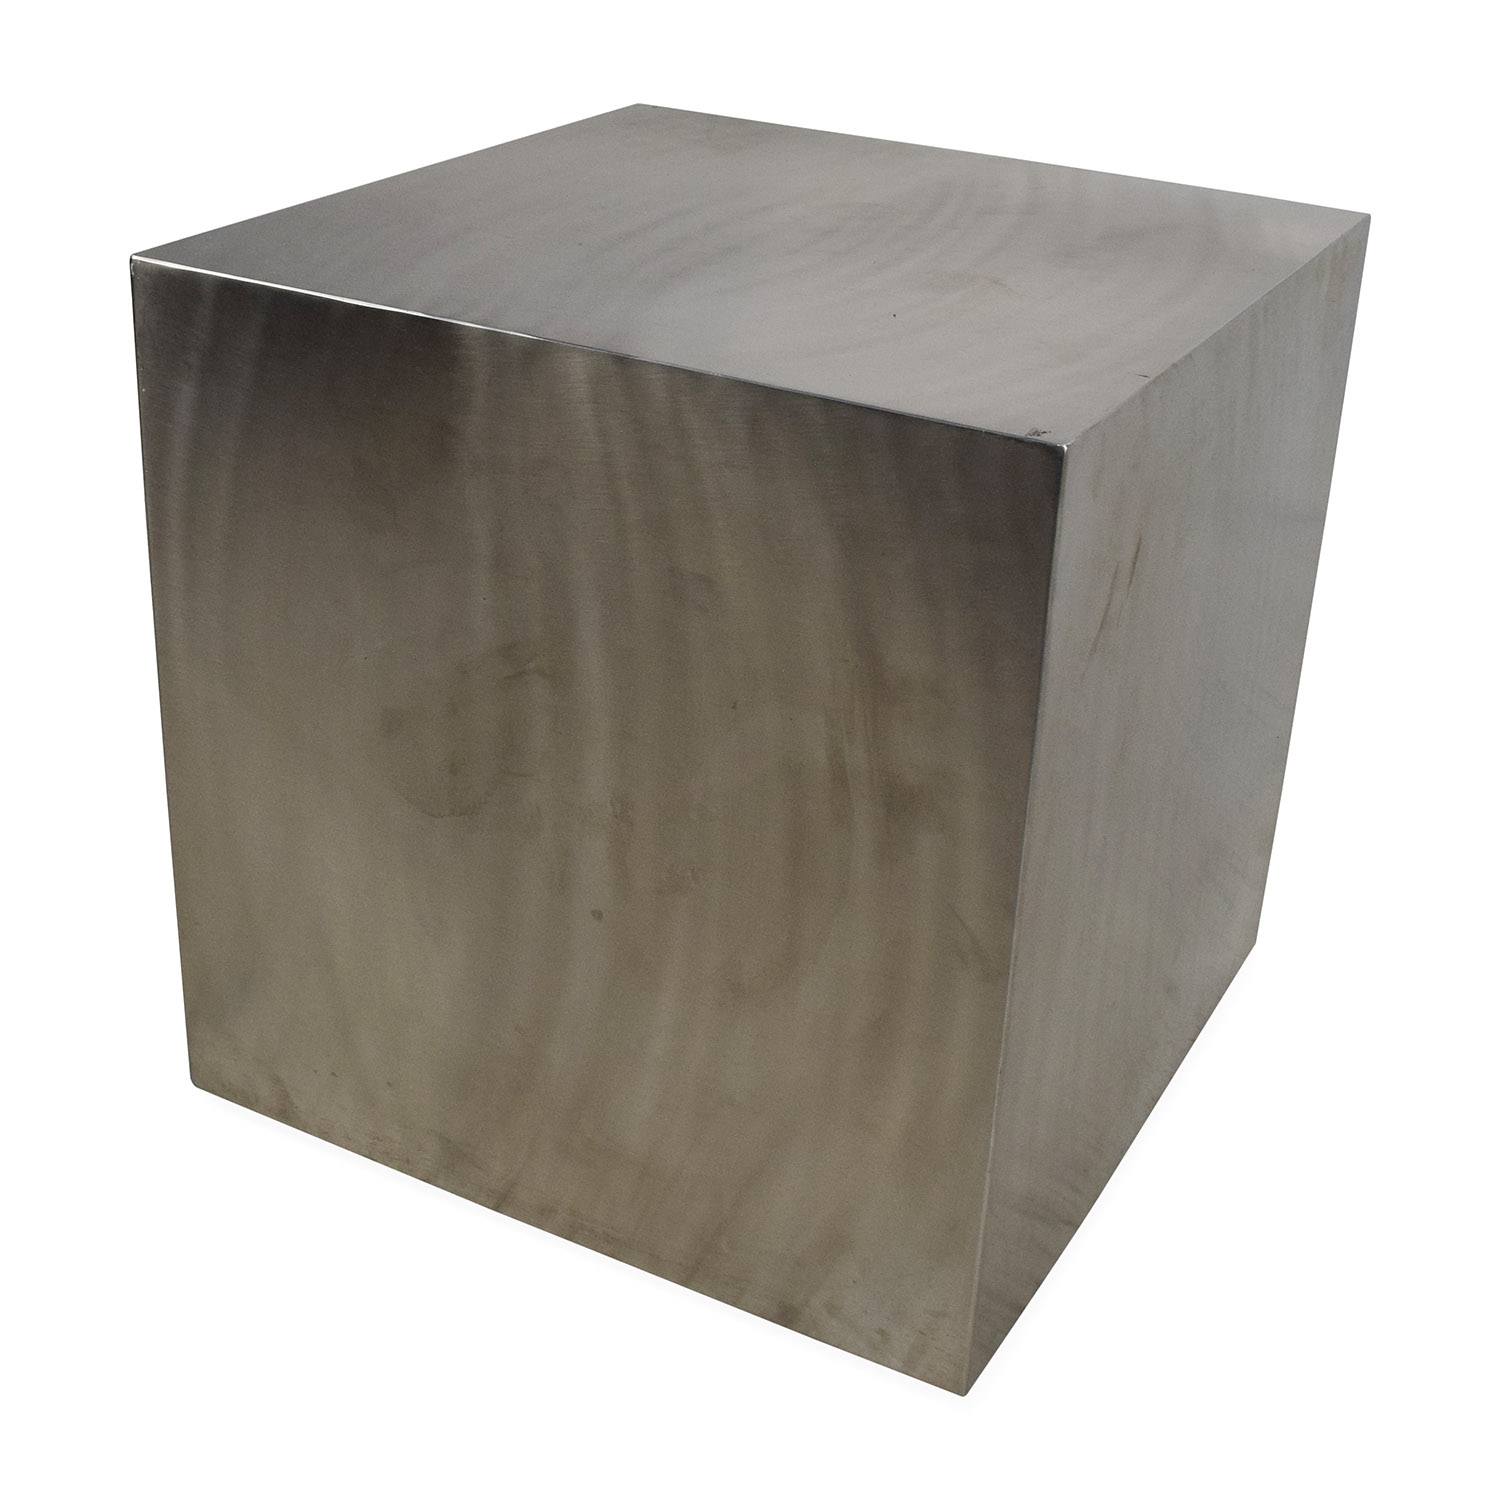 Zuo Modern Contemporary Stainless Steel End Table price